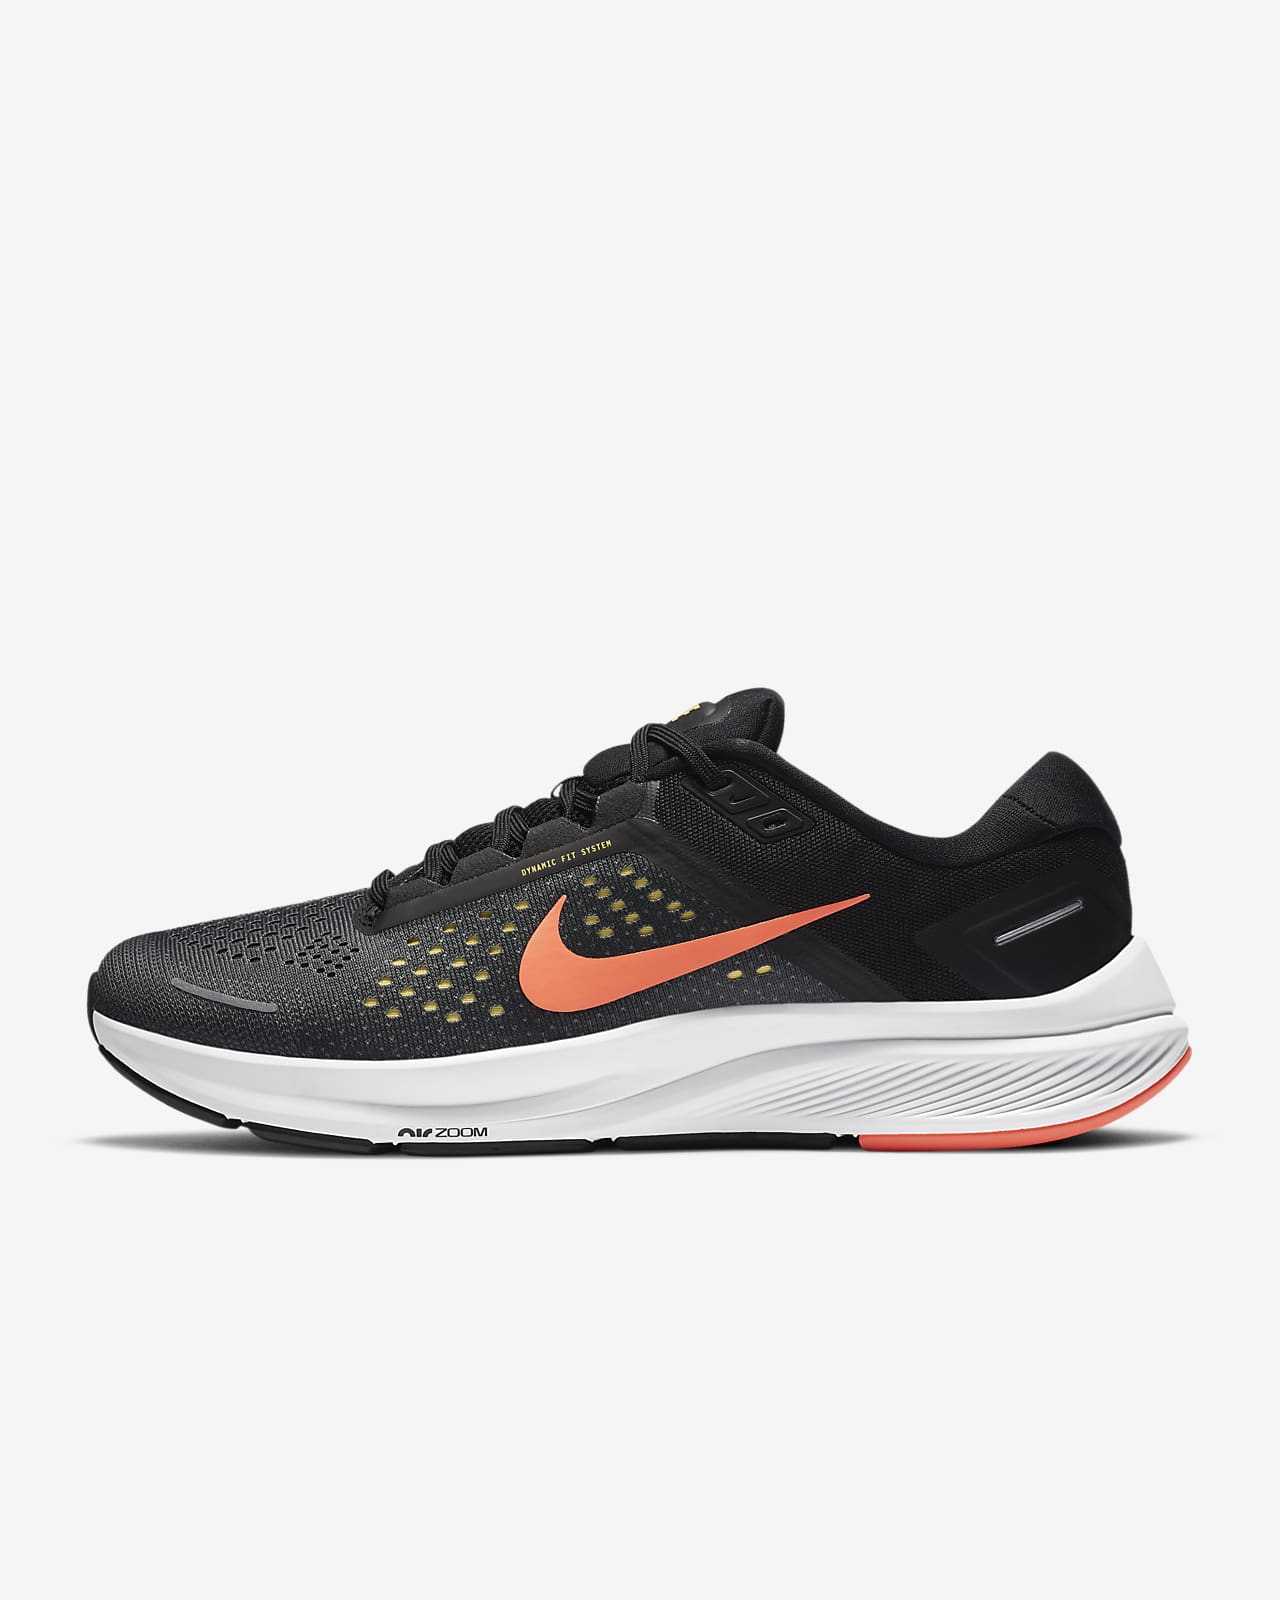 Nike Air Zoom Structure 23 Men's Running Shoe